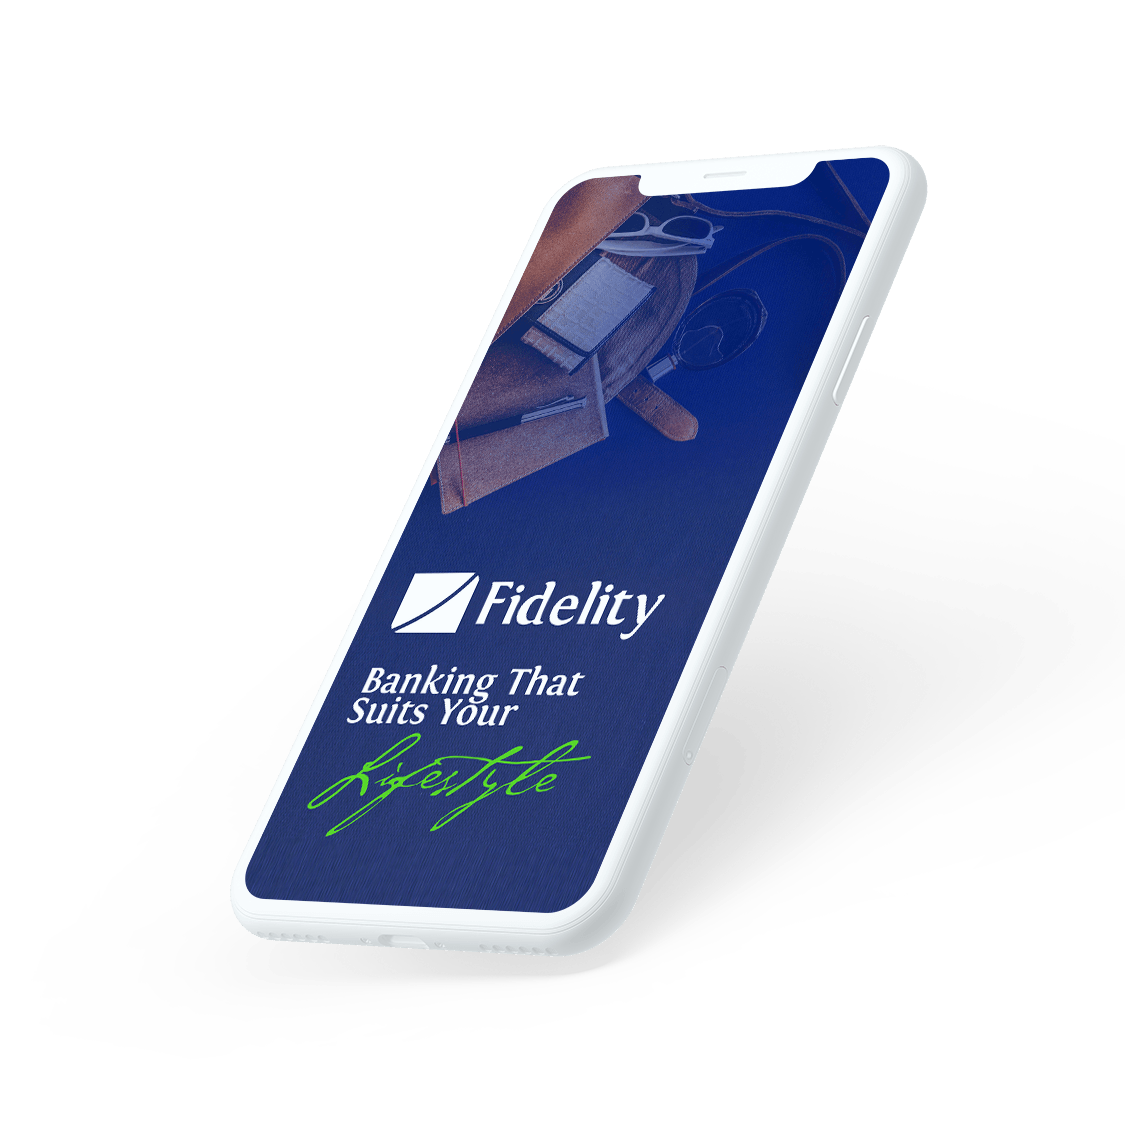 Fidelity bank Mobile app and online banking